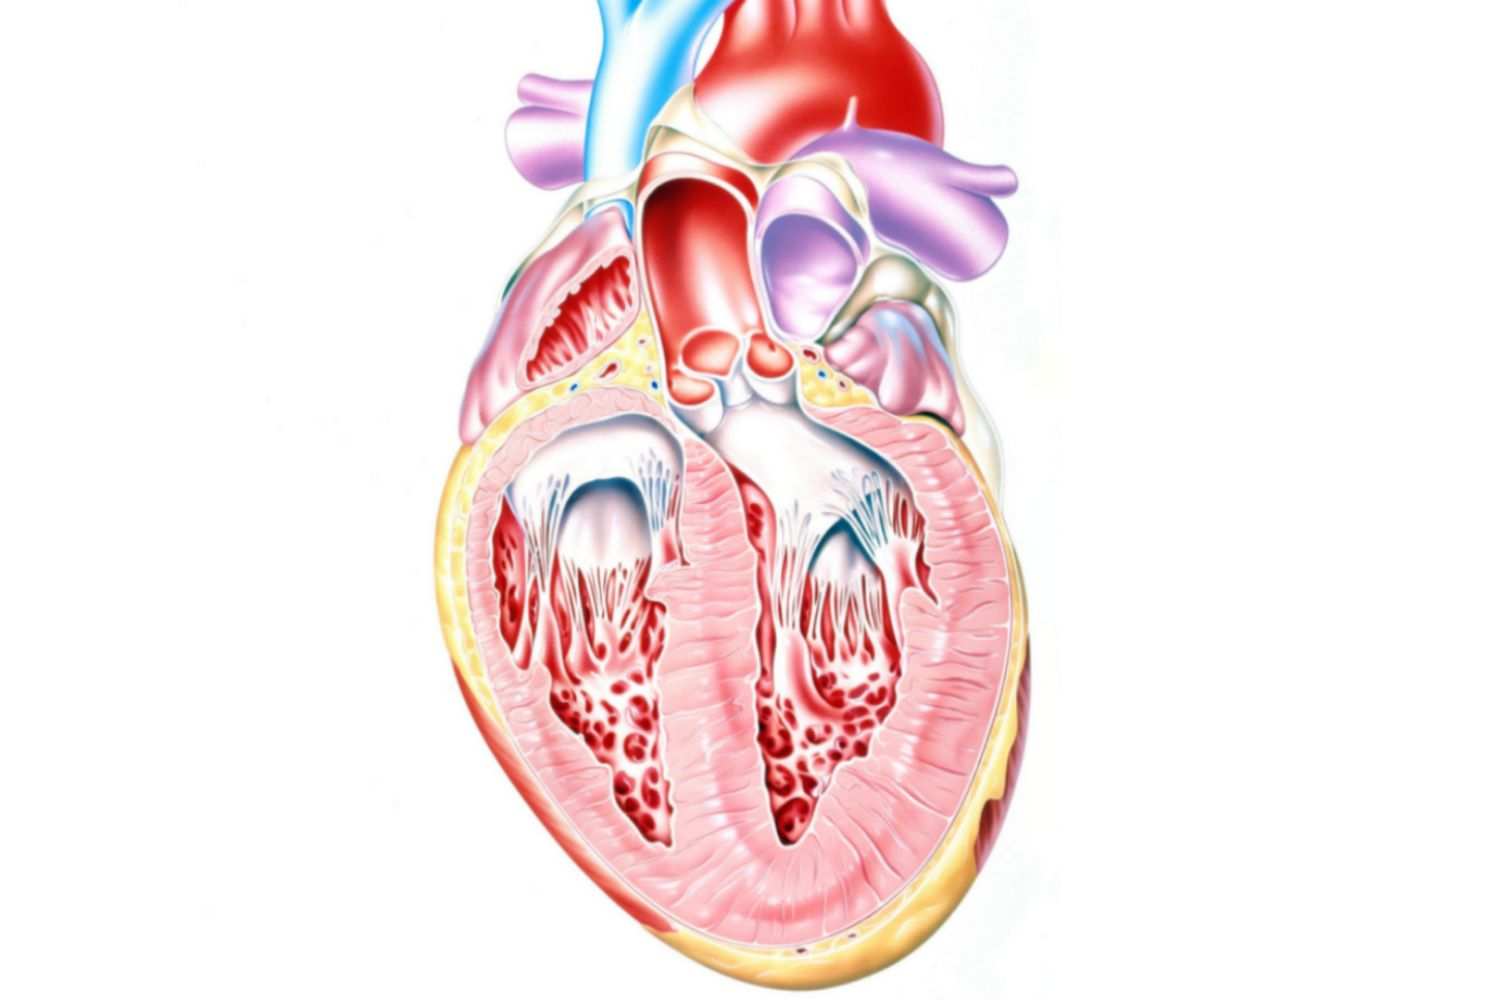 The Function Of The Heart Ventricles